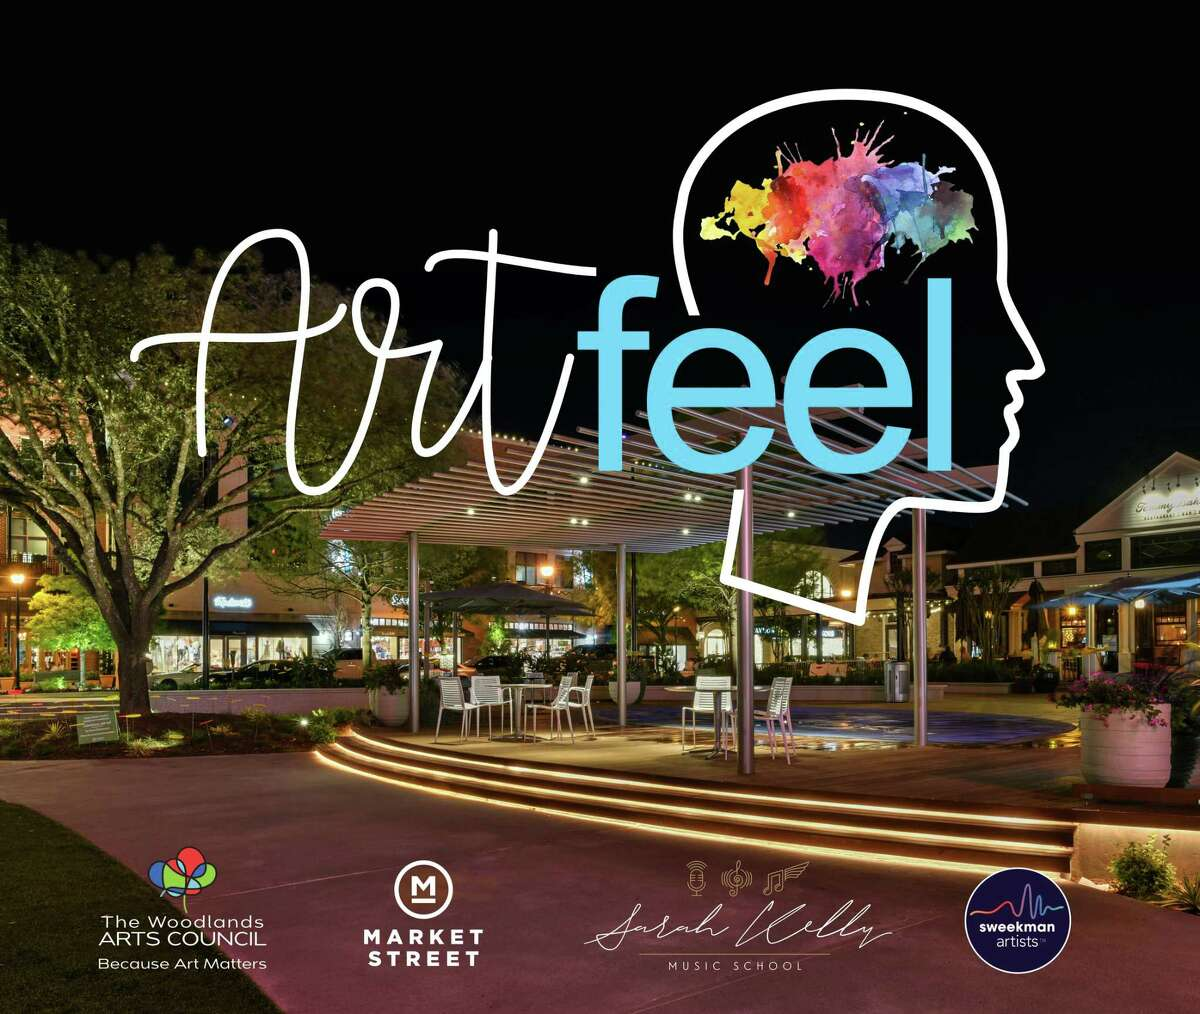 """The """"nights of whimsy"""" known to Woodlands residents as Artfeel may not be happening in-person at Market Street due to the COVID-19 pandemic, however a new online initiative is underway to lift spirits across the township as well as to heal any divides that have emerged in recent months."""